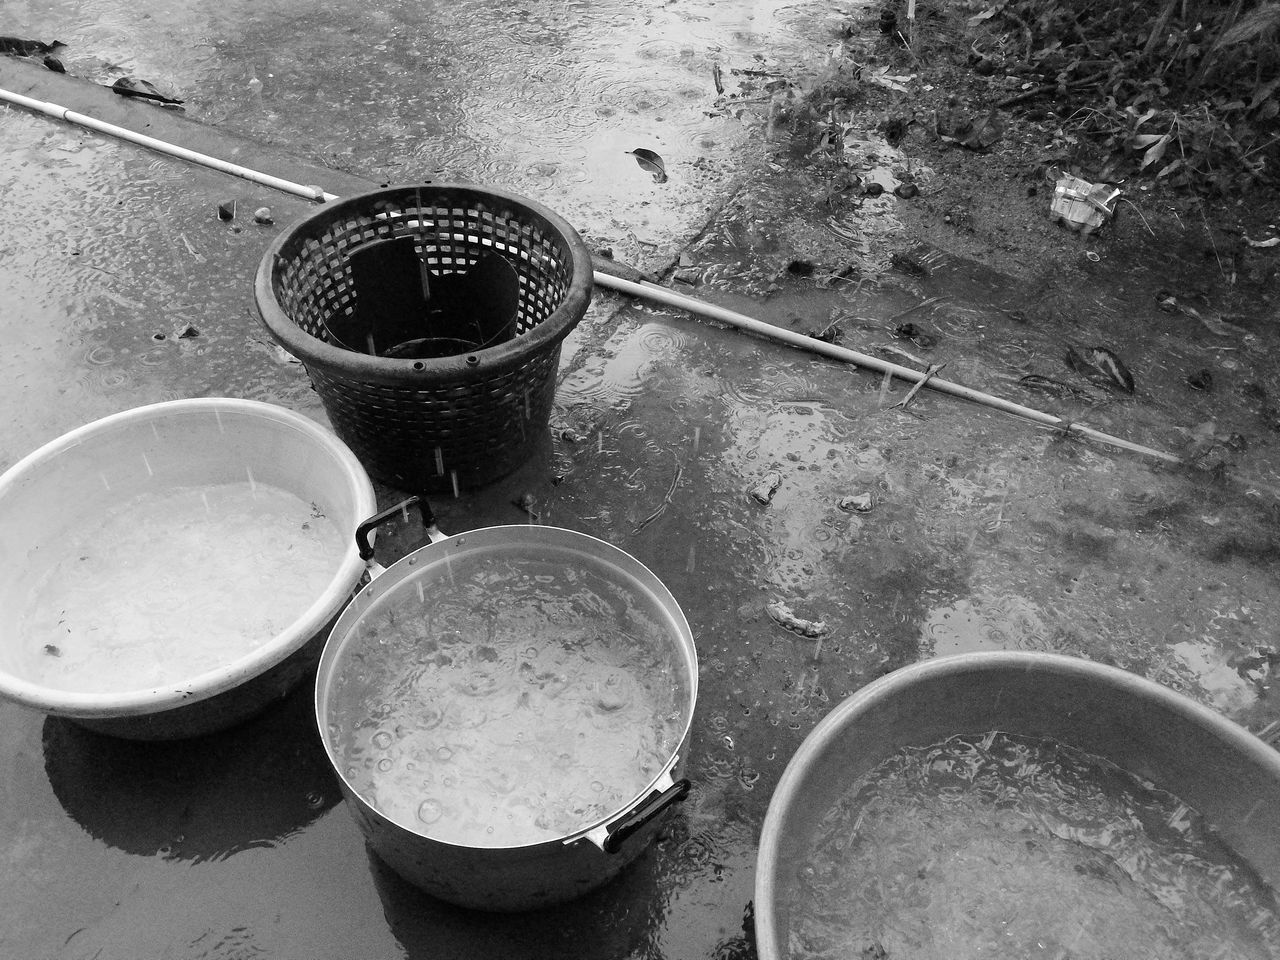 Chance Encounters Chance Water Basin Basın Water Droplets Reseved Monochrome Black And White Blackandwhite